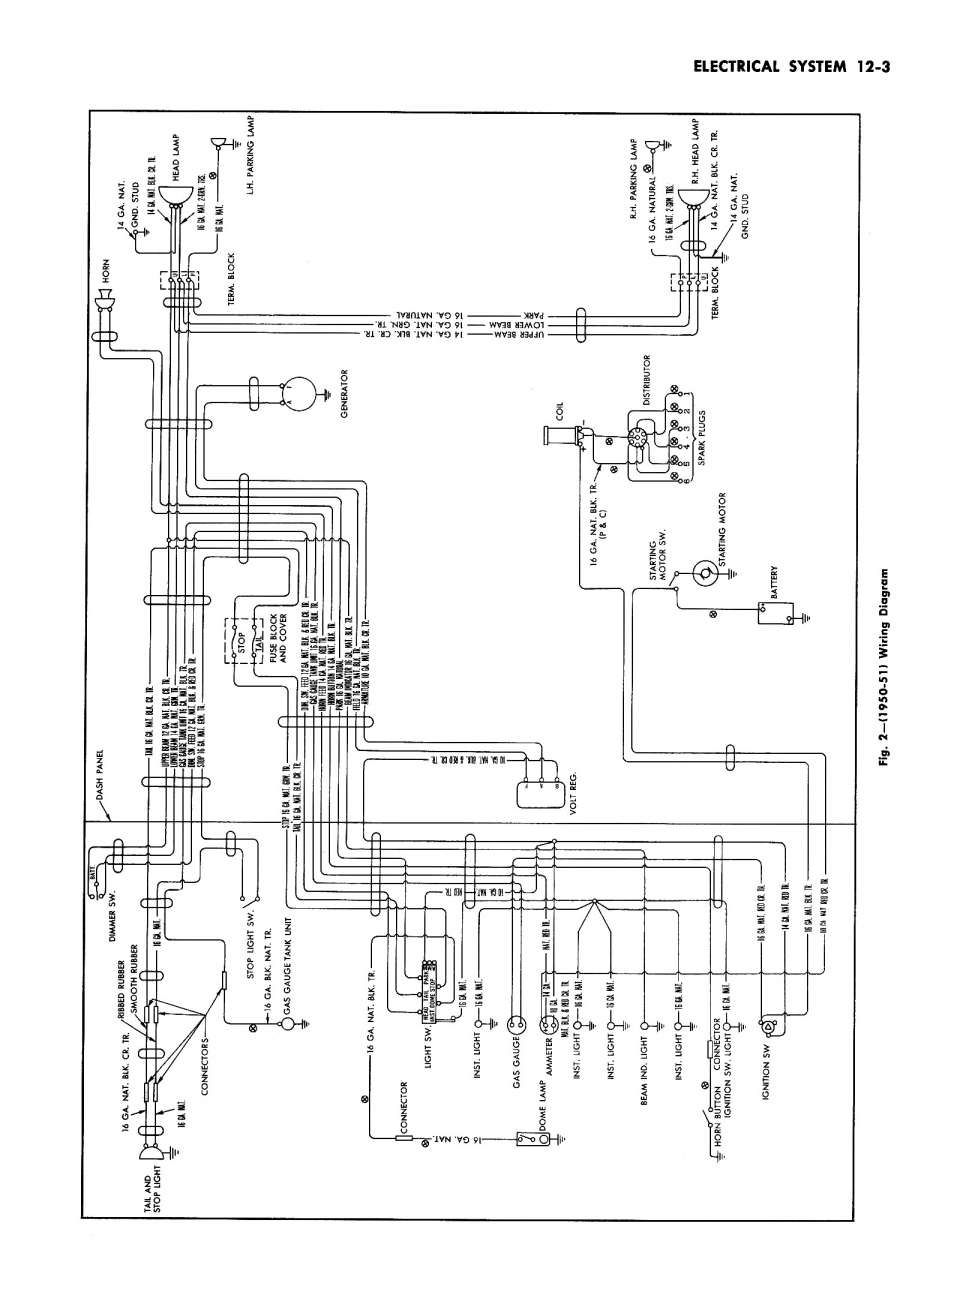 Wiring Diagram For 1950 Chevy Truck Wiring Diagrams Name Name Miglioribanche It